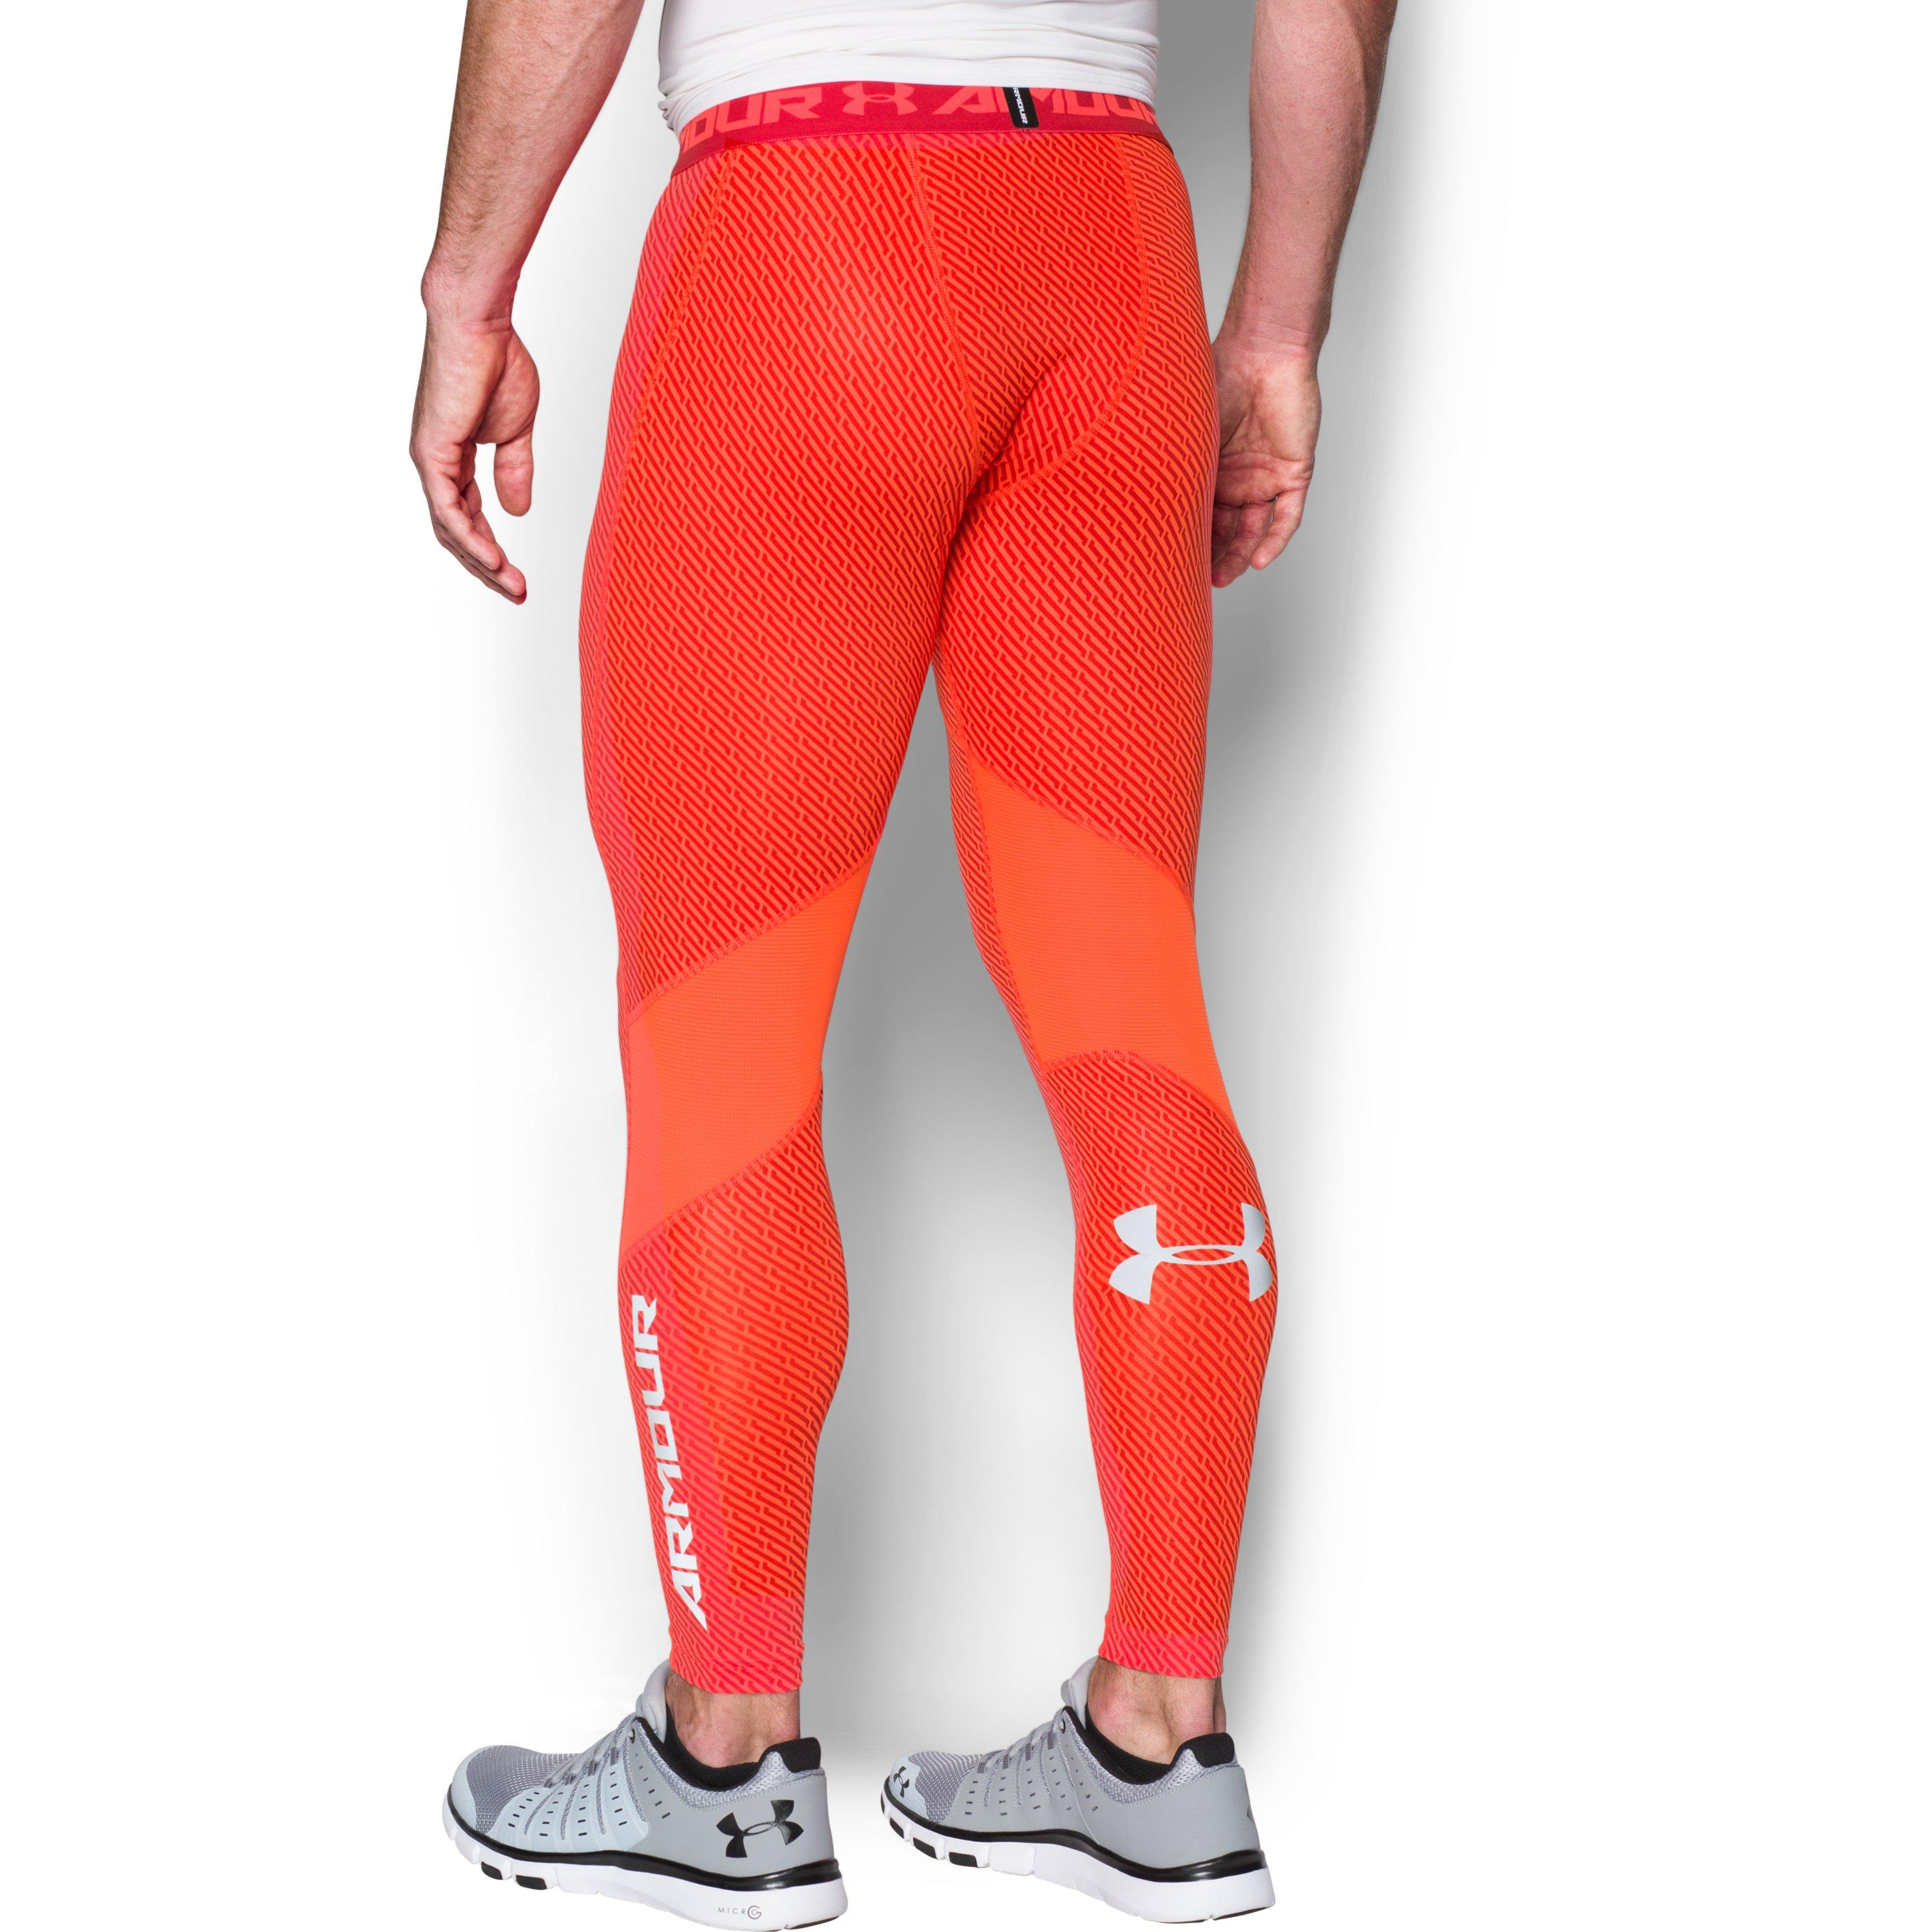 b8763385cee99 Under Armour Men's Ua Coolswitch Compression Leggings in Orange for ...